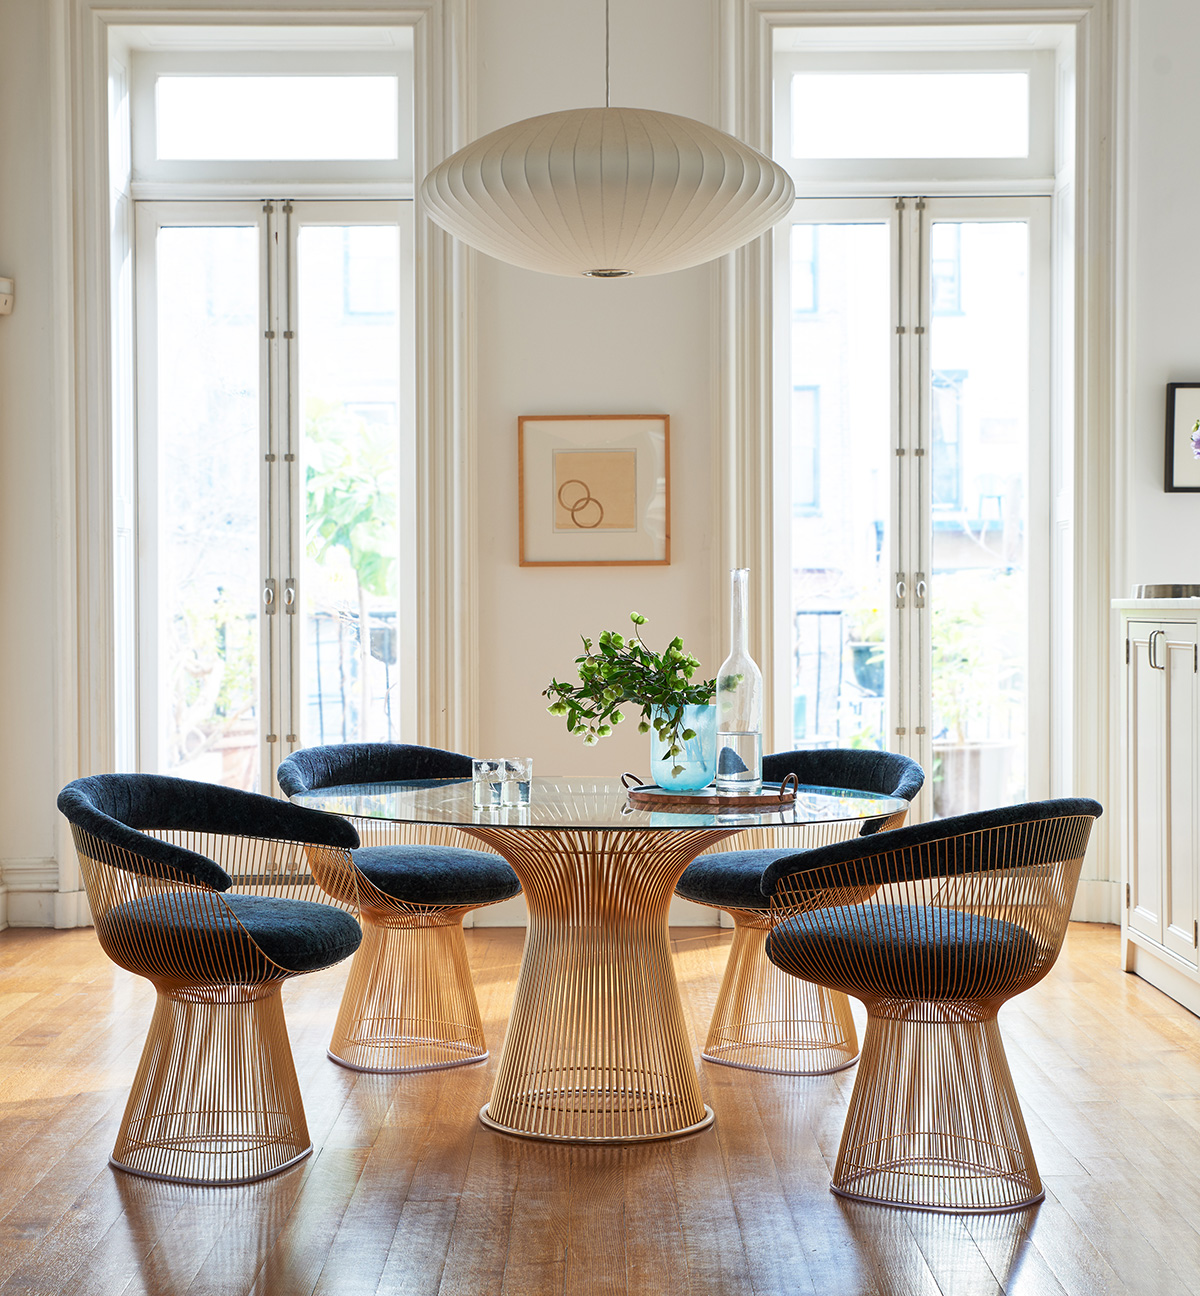 A dining room featuring A Knoll Platner Dining Table and Chairs and a Herman Miller Bubble Pendant